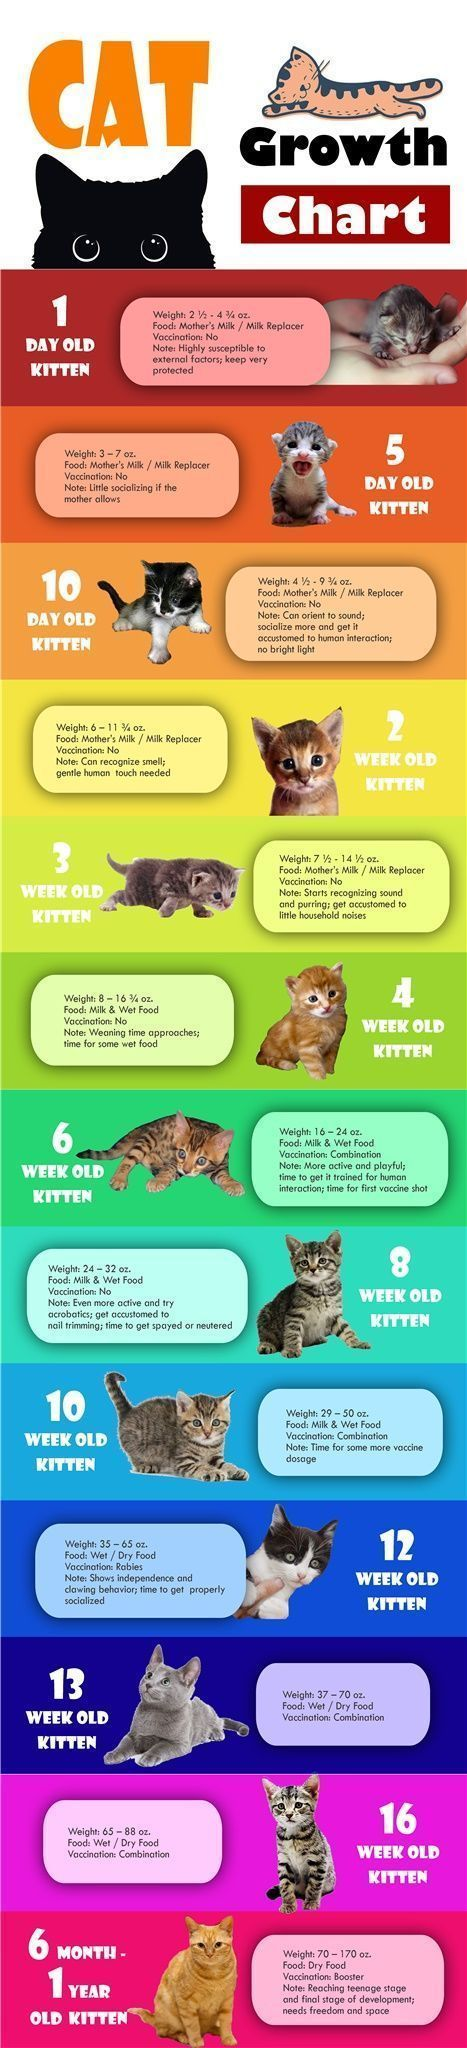 Infographic Kitten Cat Growth Chart By Age Weight And Food Source Http Best1x Com Kitten Cat Growth Chart Catsbreeds Cat Infographic Kitten Kitten Care